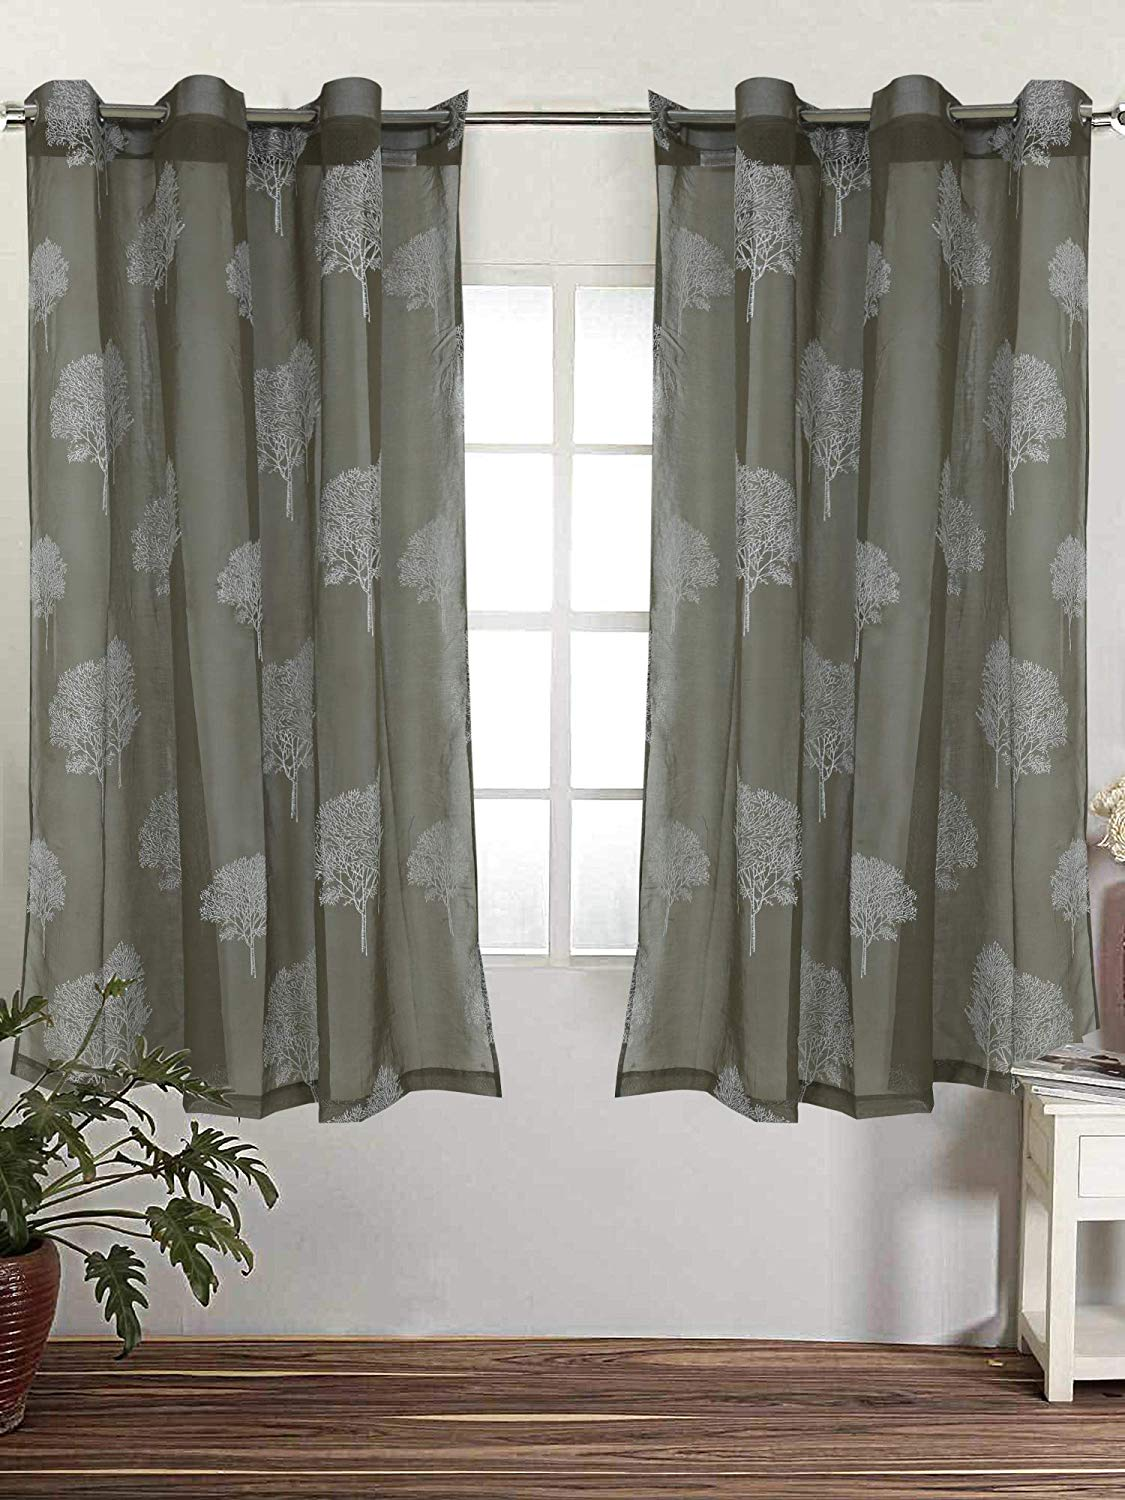 Linenwalas Elegant Rubber Tree Print Design Non Blackout Sheer Door Curtain With Eyelet Rings Set Of 2 Olive Green 4 5ft X7ft Aarav Mart